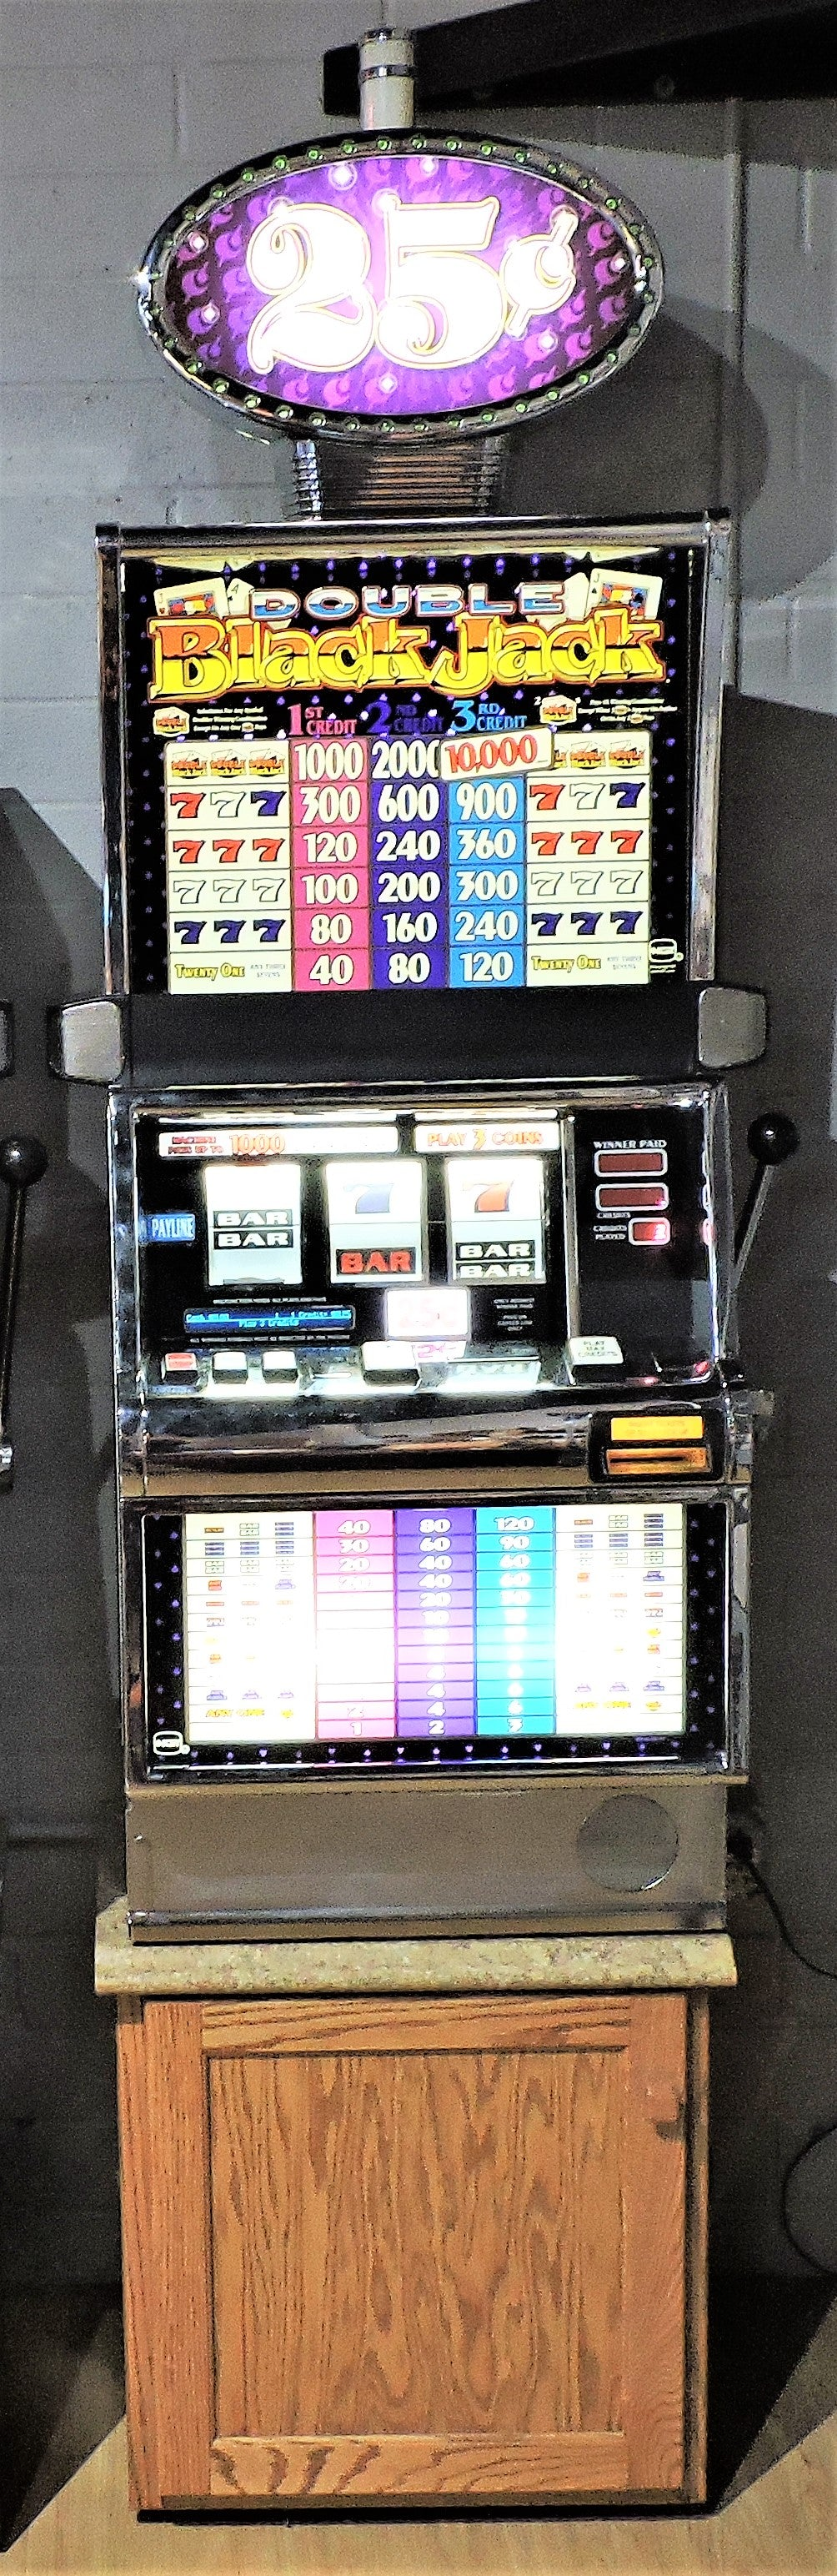 Double Black Jack tall slot machine